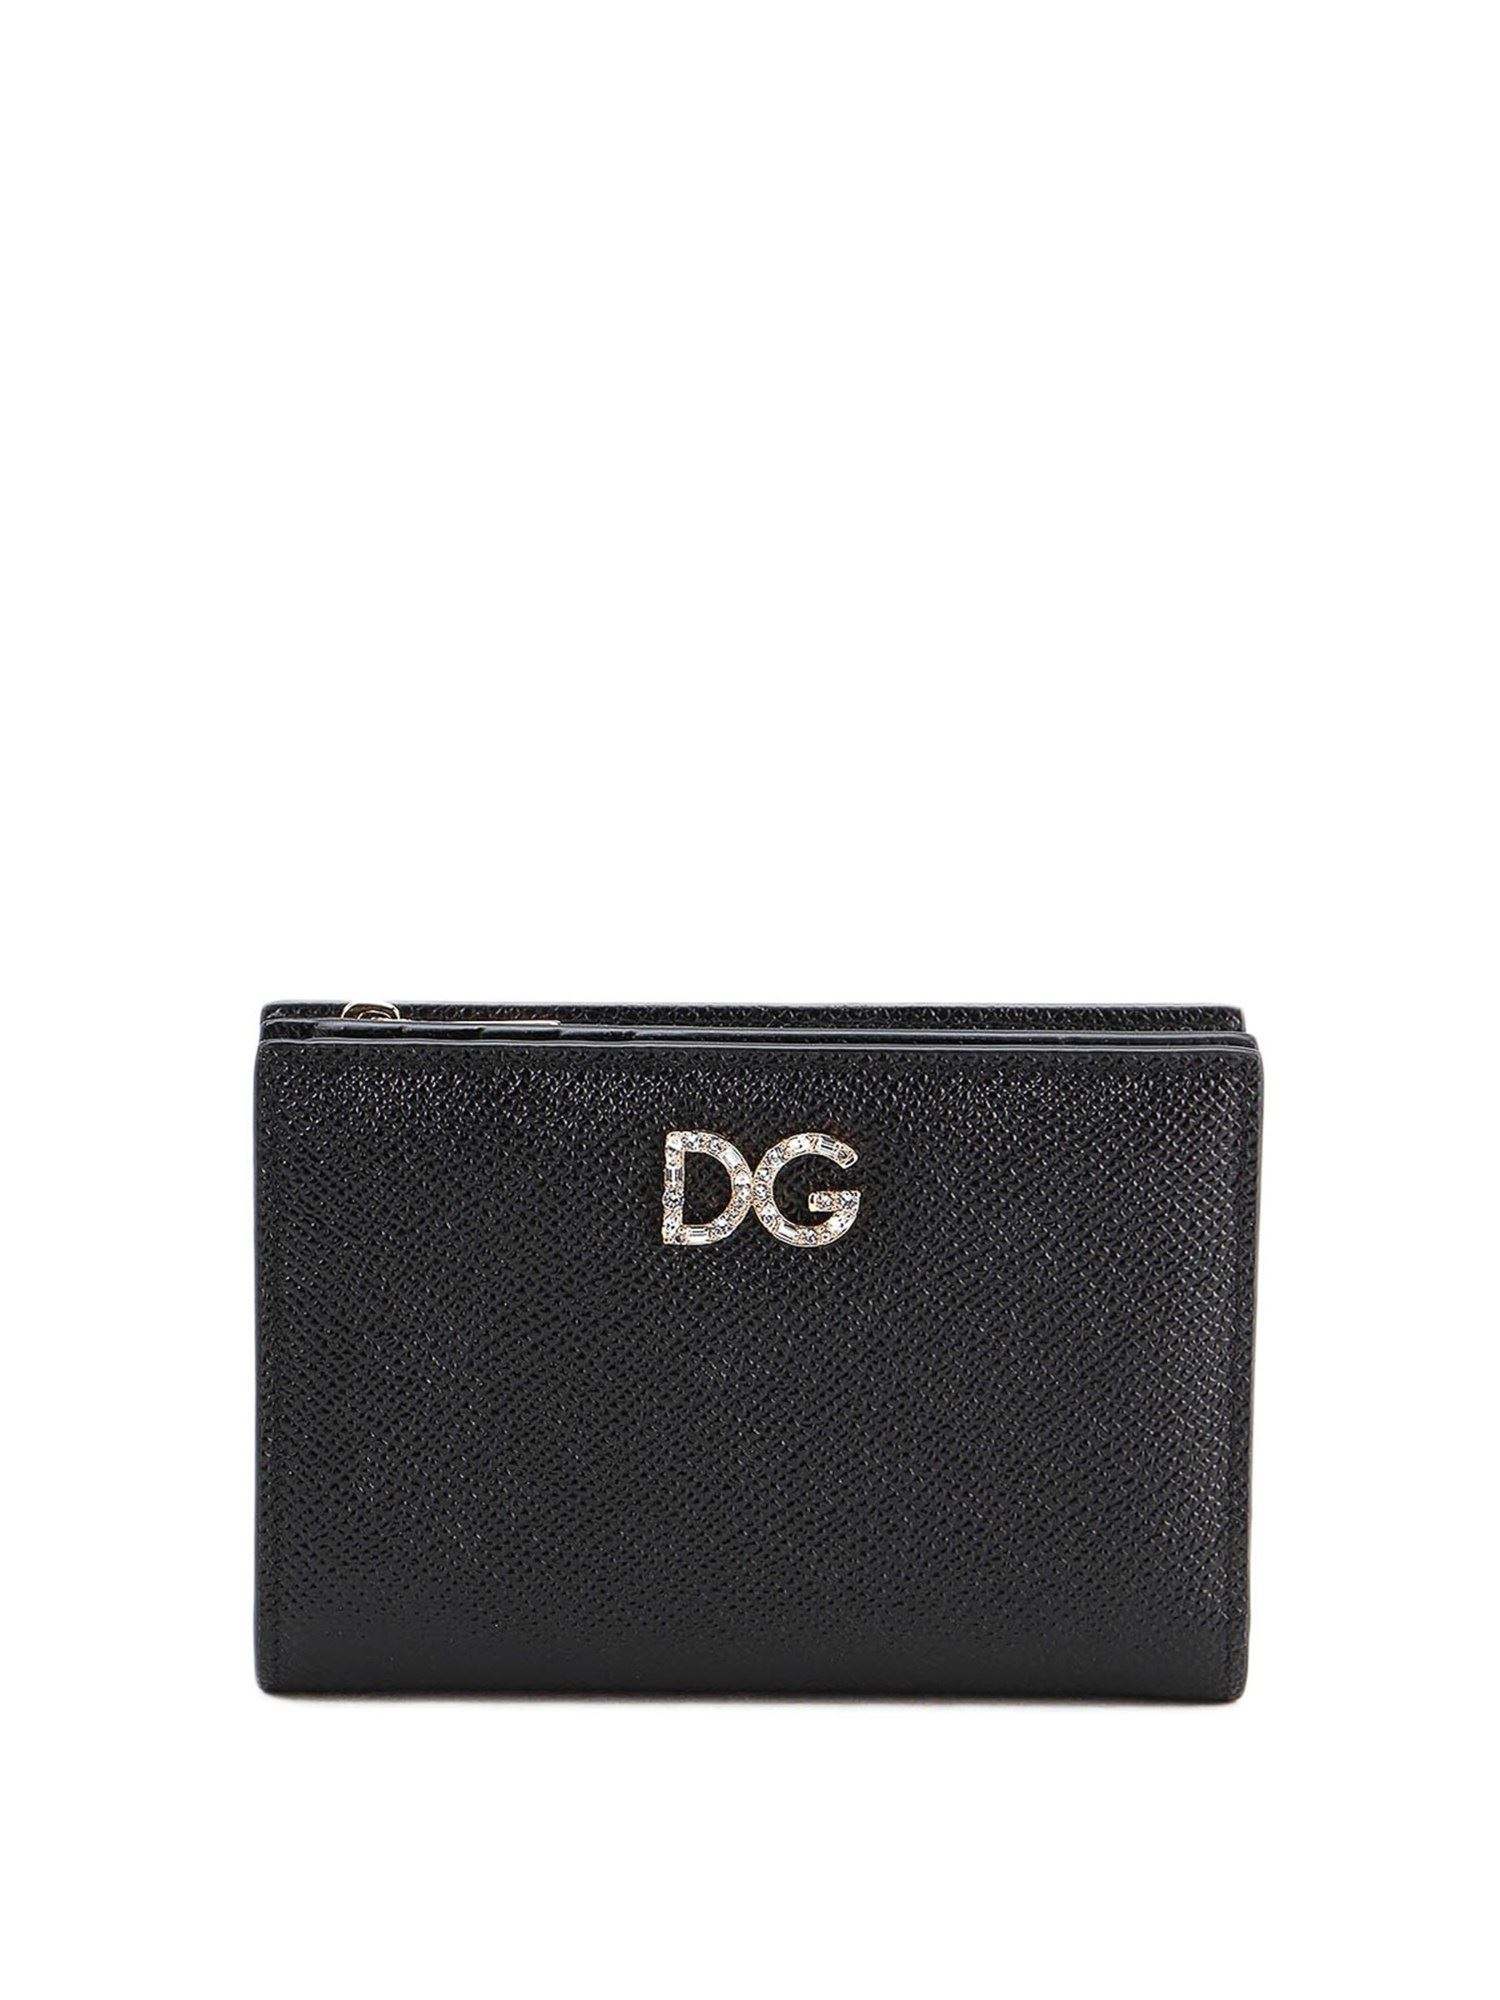 Dolce & Gabbana HAMMERED LEATHER BIFOLD WALLET IN BLACK